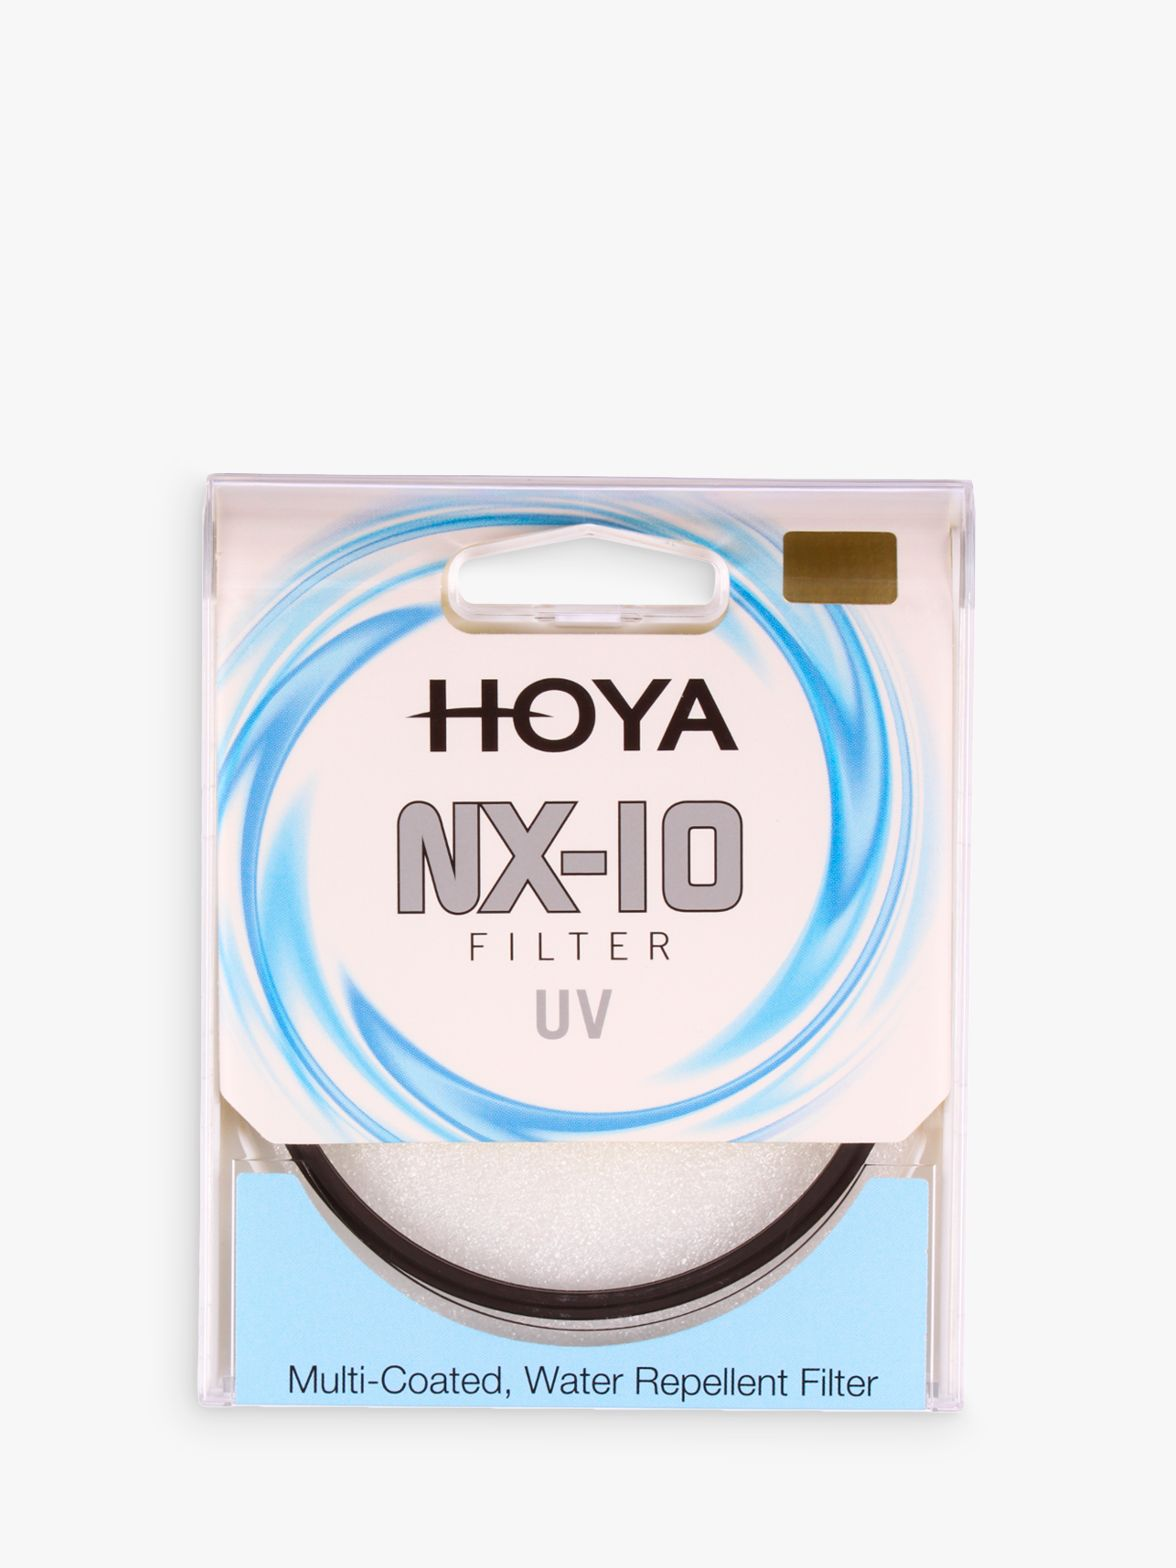 Hoya Hoya NX-10 UV Lens Filter, 77mm